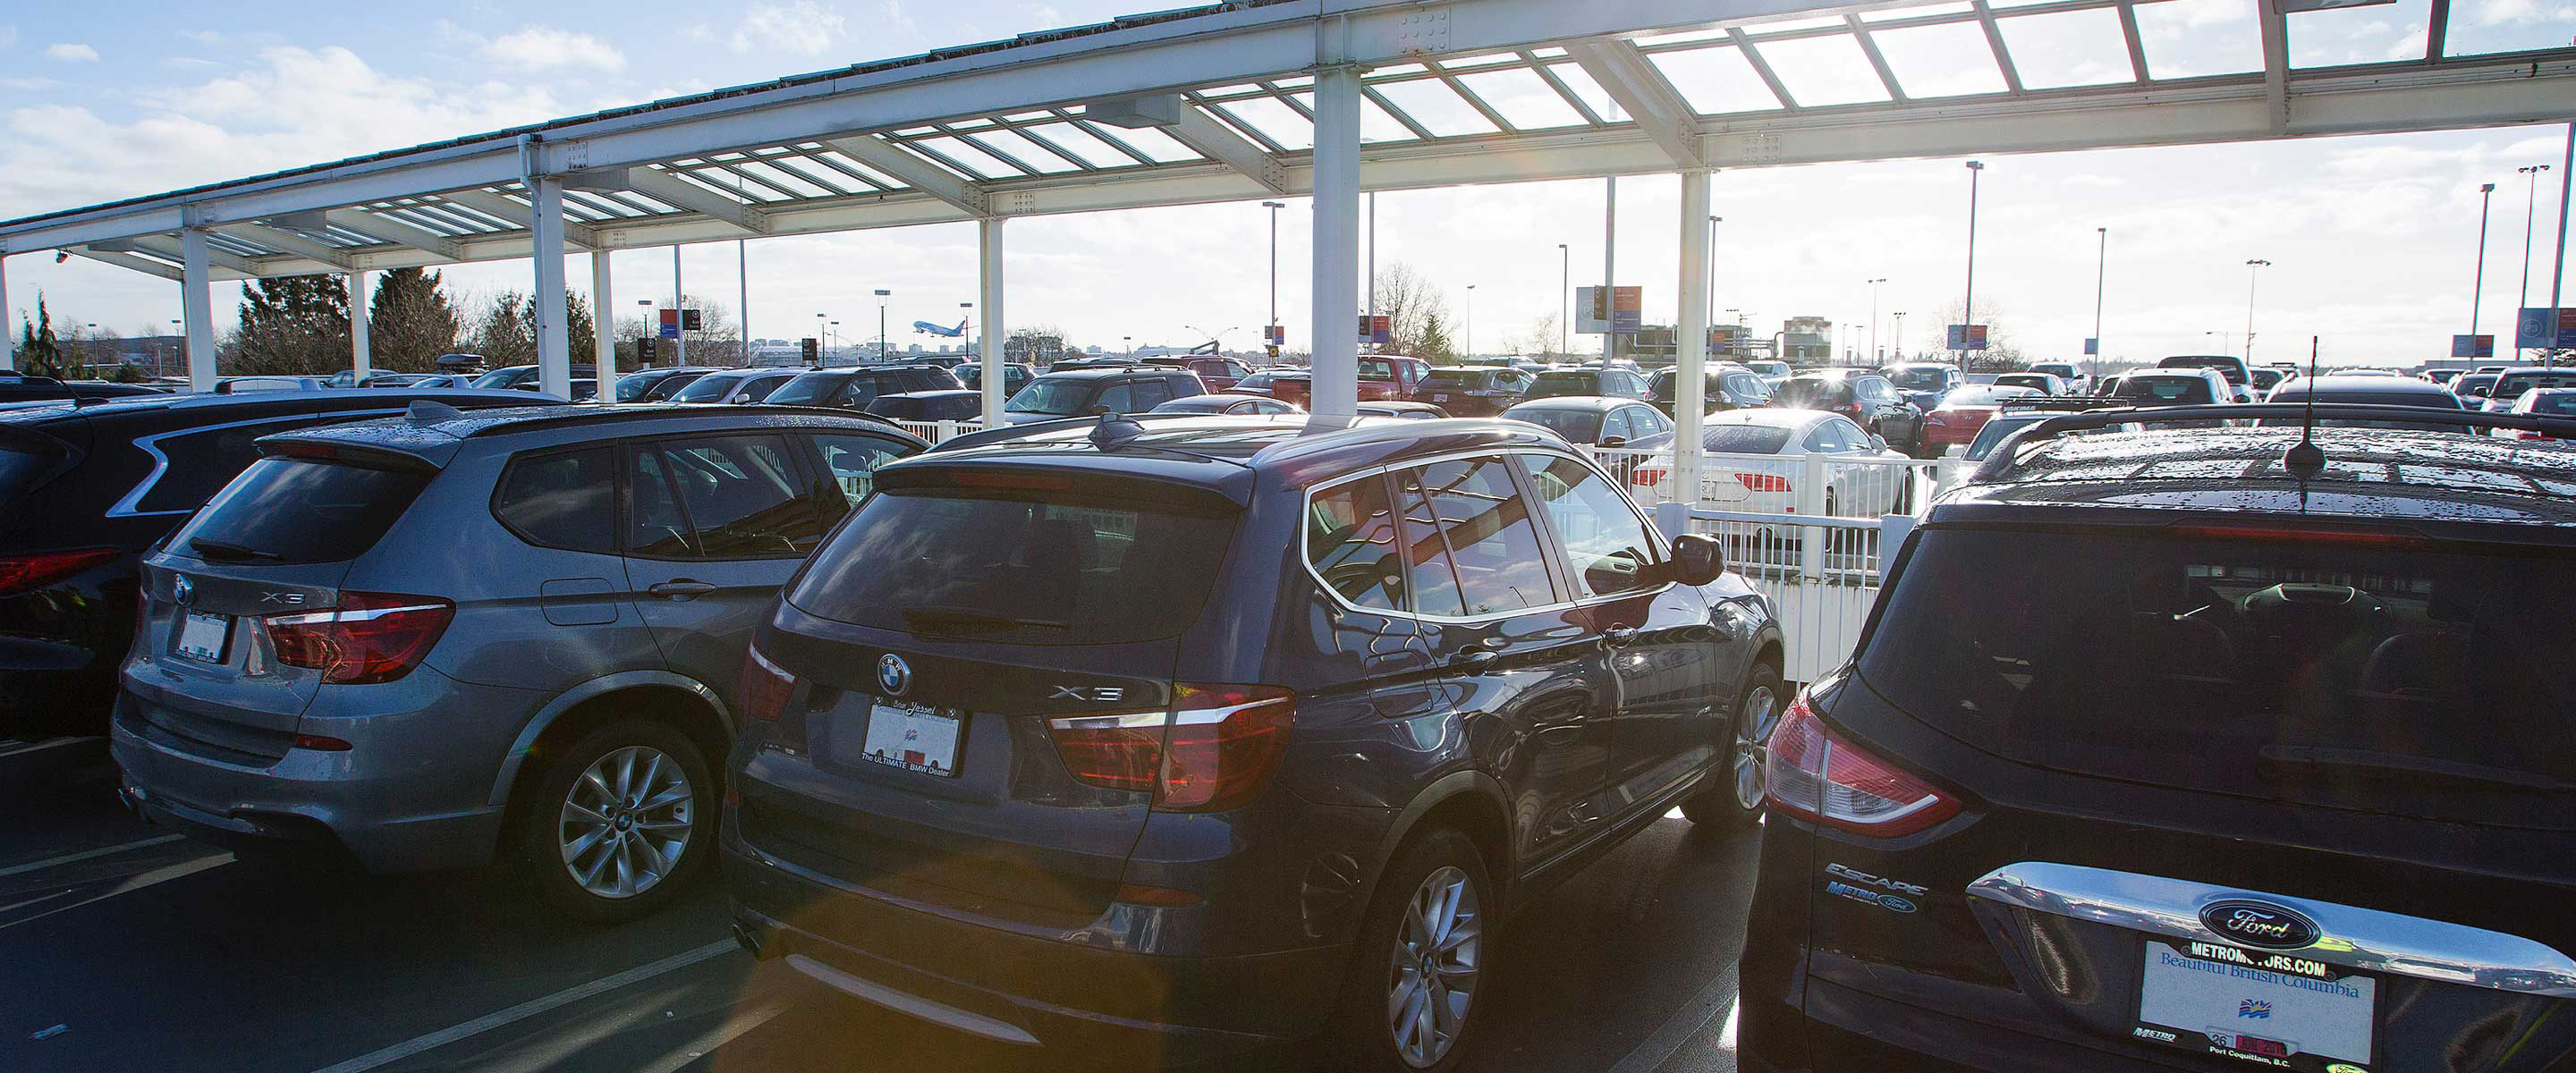 Yvr airport parking coupons